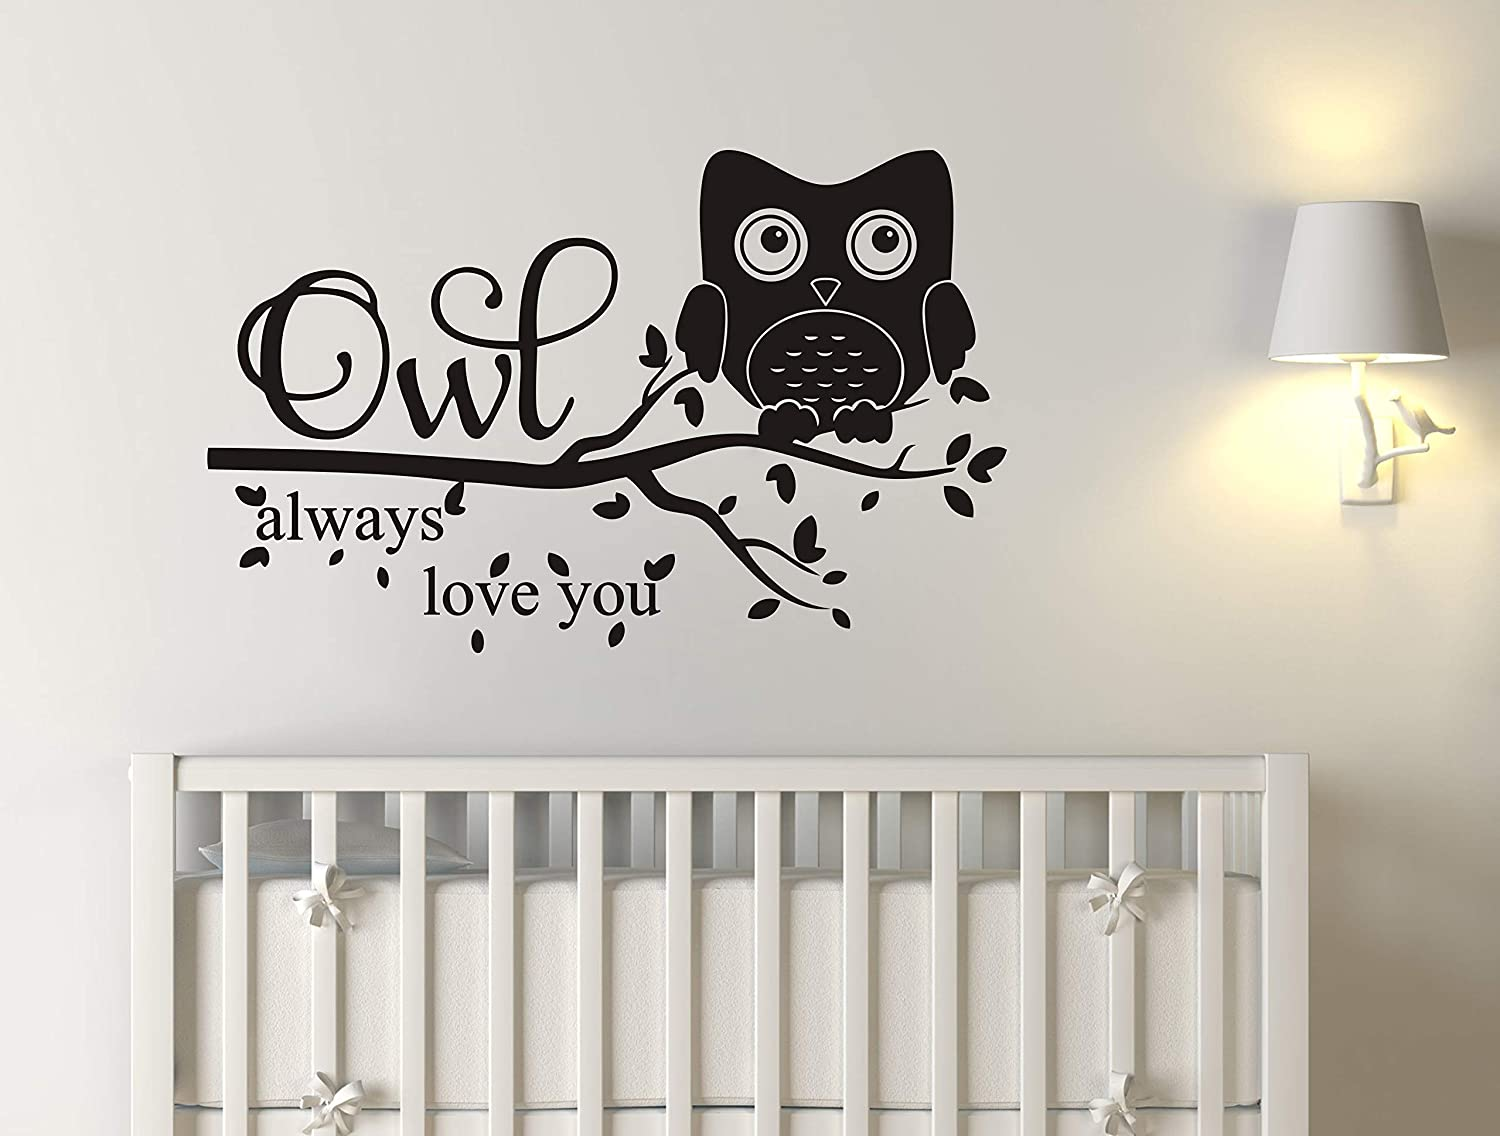 Owl Wall Decals, Owl Always Love You Wall Decal, Owl Nursery Decal, Nursery Decor, Vinyl Wall Decal for Kids Boys Girls, Quote Wall Decals A38 (Small)